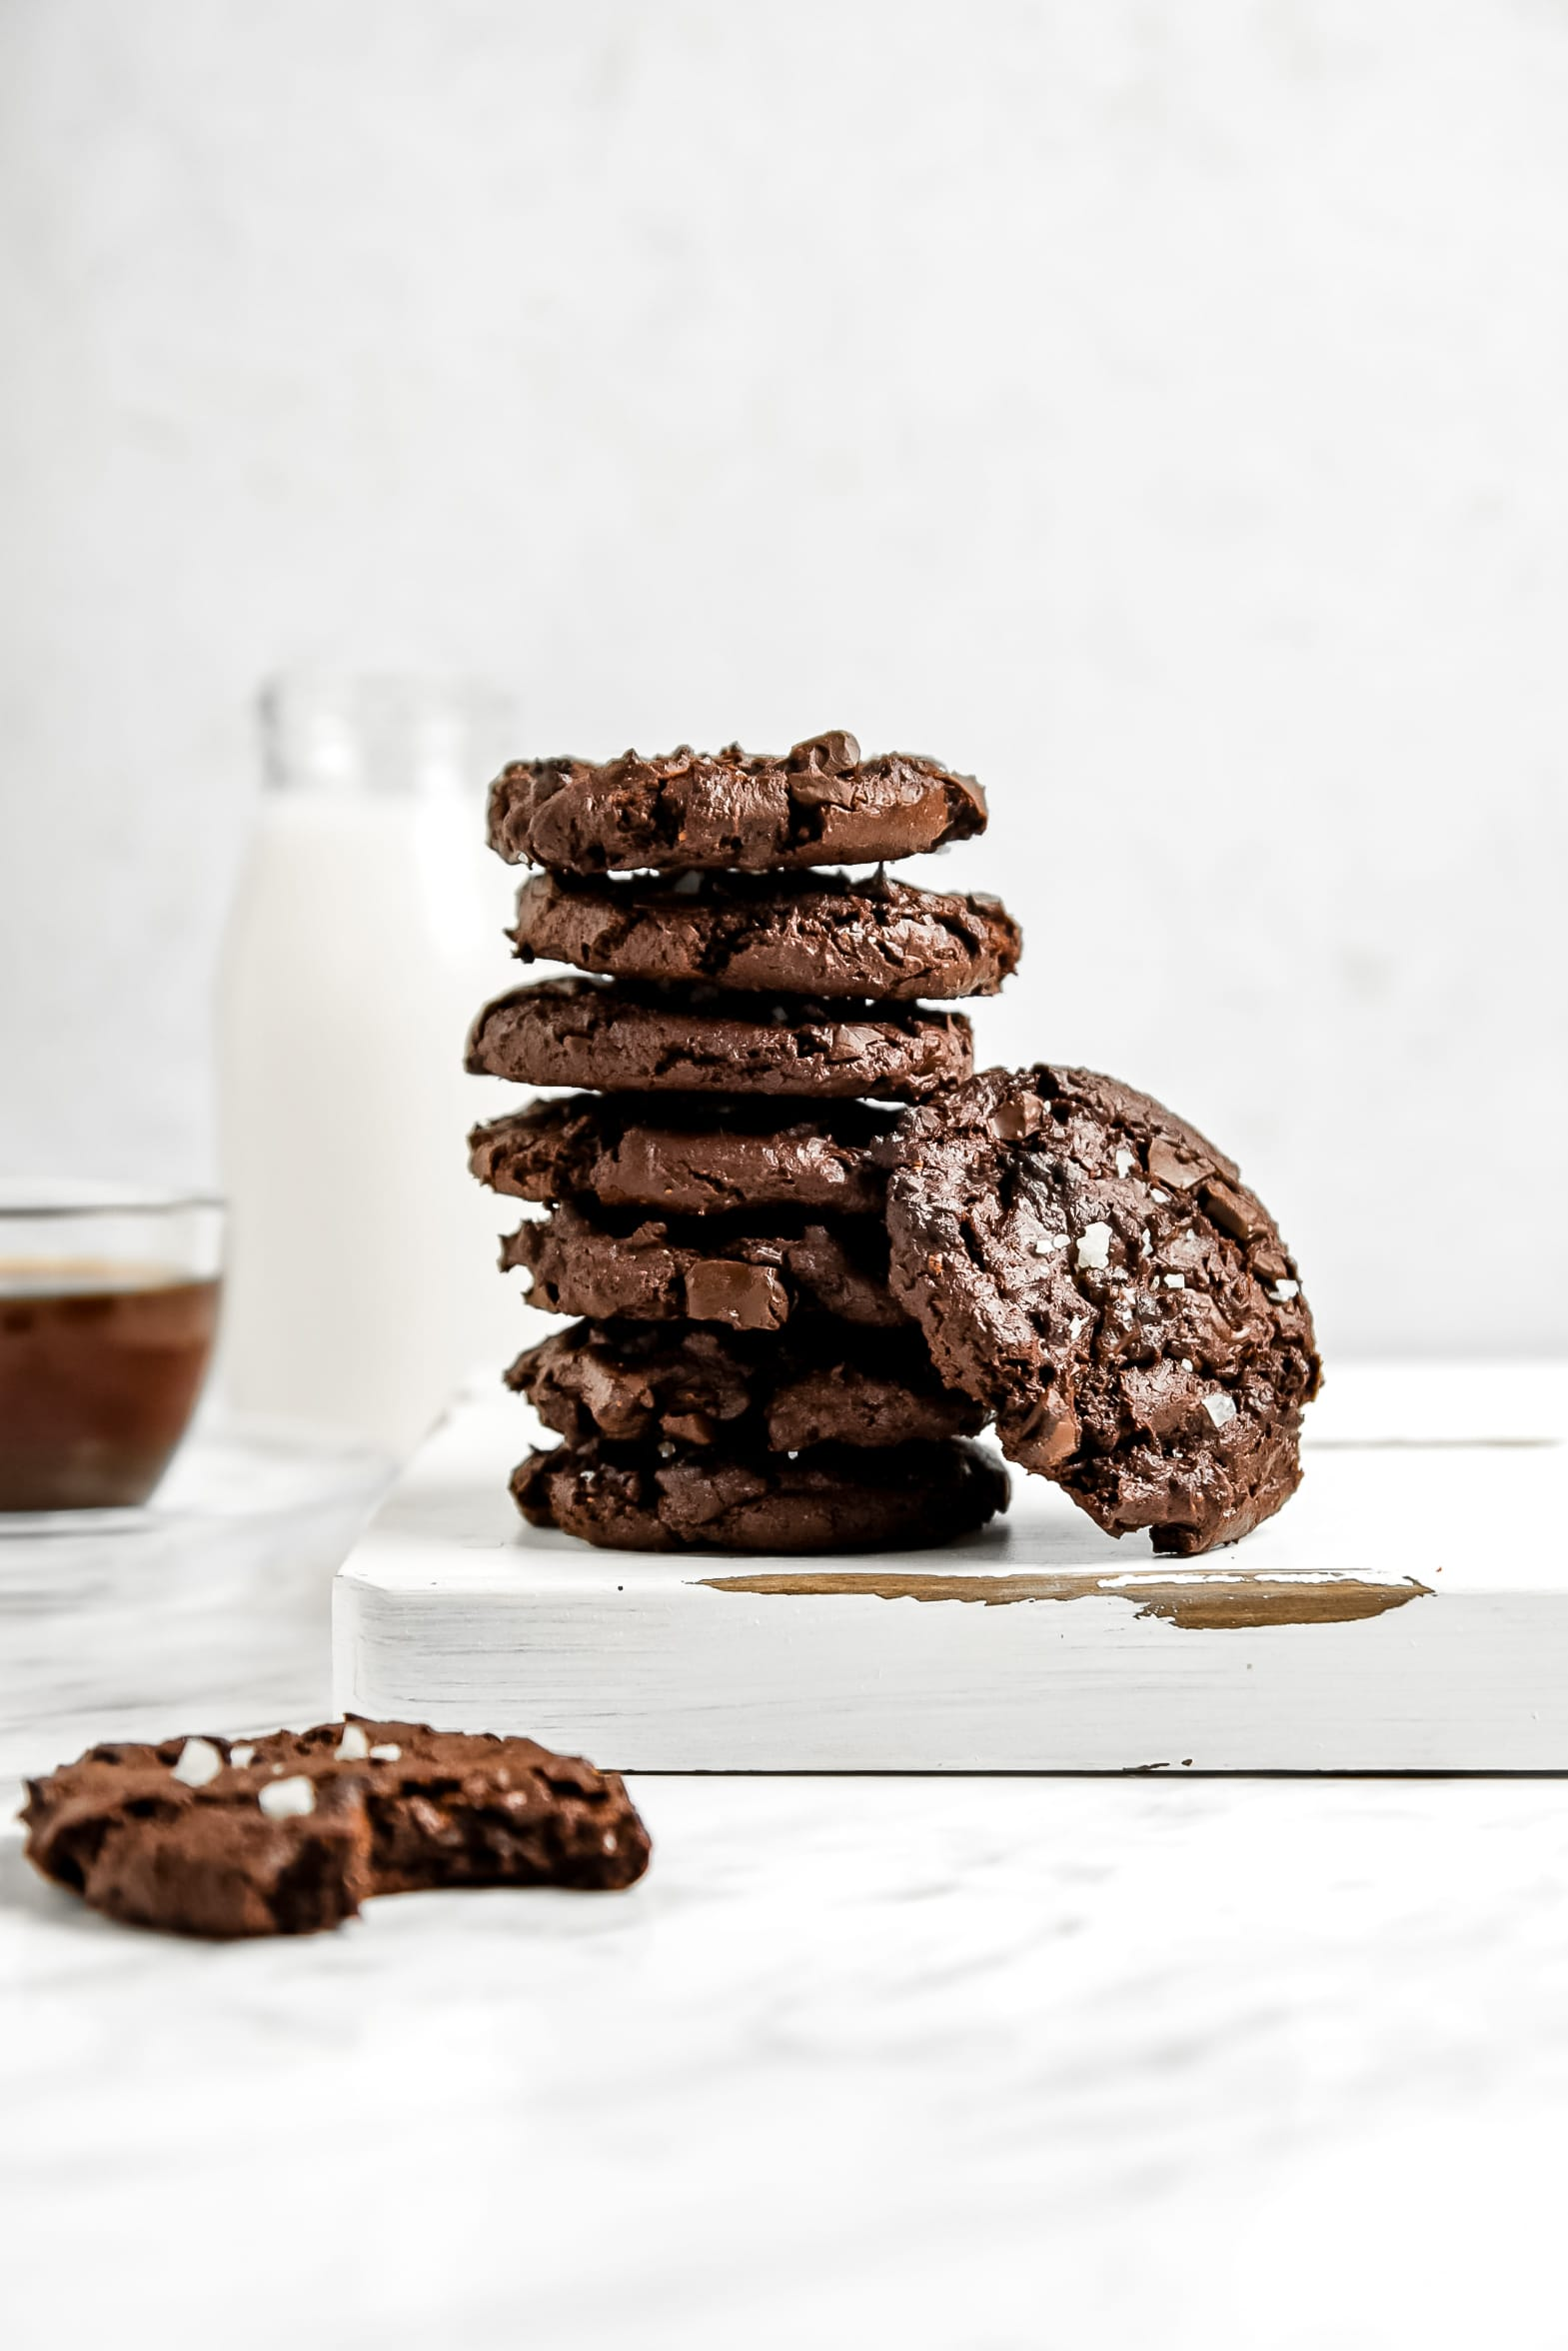 Vertical picture of a stack of brownie cookies on a white plate with one cookie leaning on the stack and a bitten brownie cookie in the front.